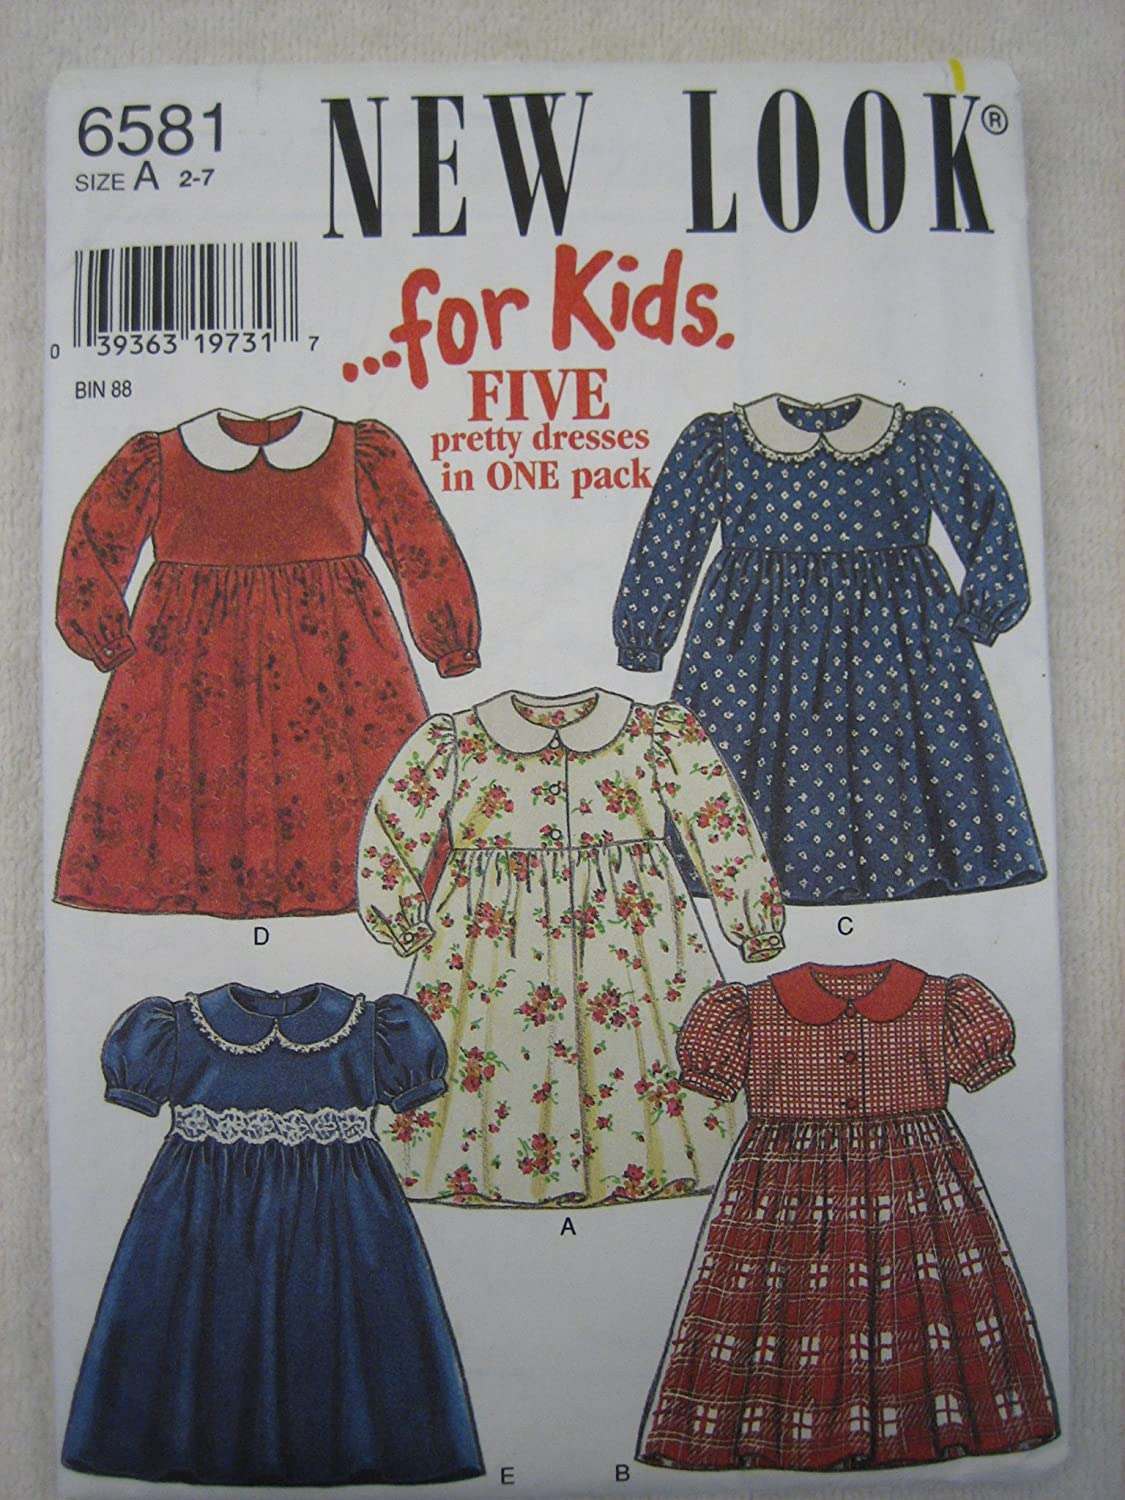 New Look Pattern 6581 Five Dresses in One Pack Size A 2-7 by New Look   B007KHC9AA